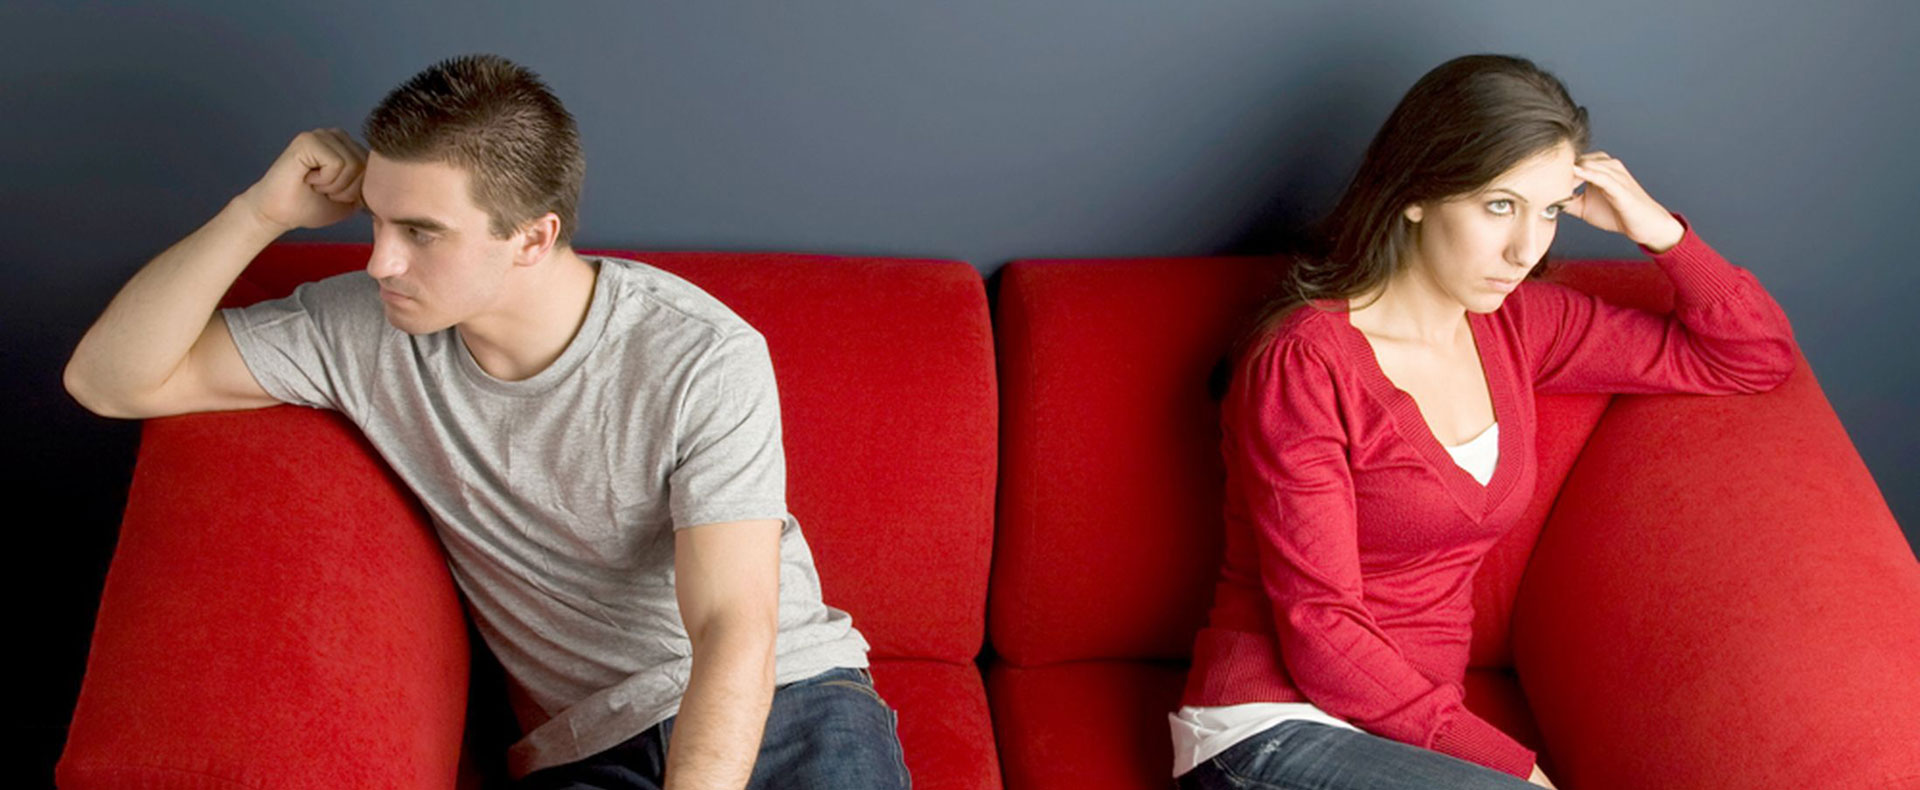 Counselling for Relationship Problems